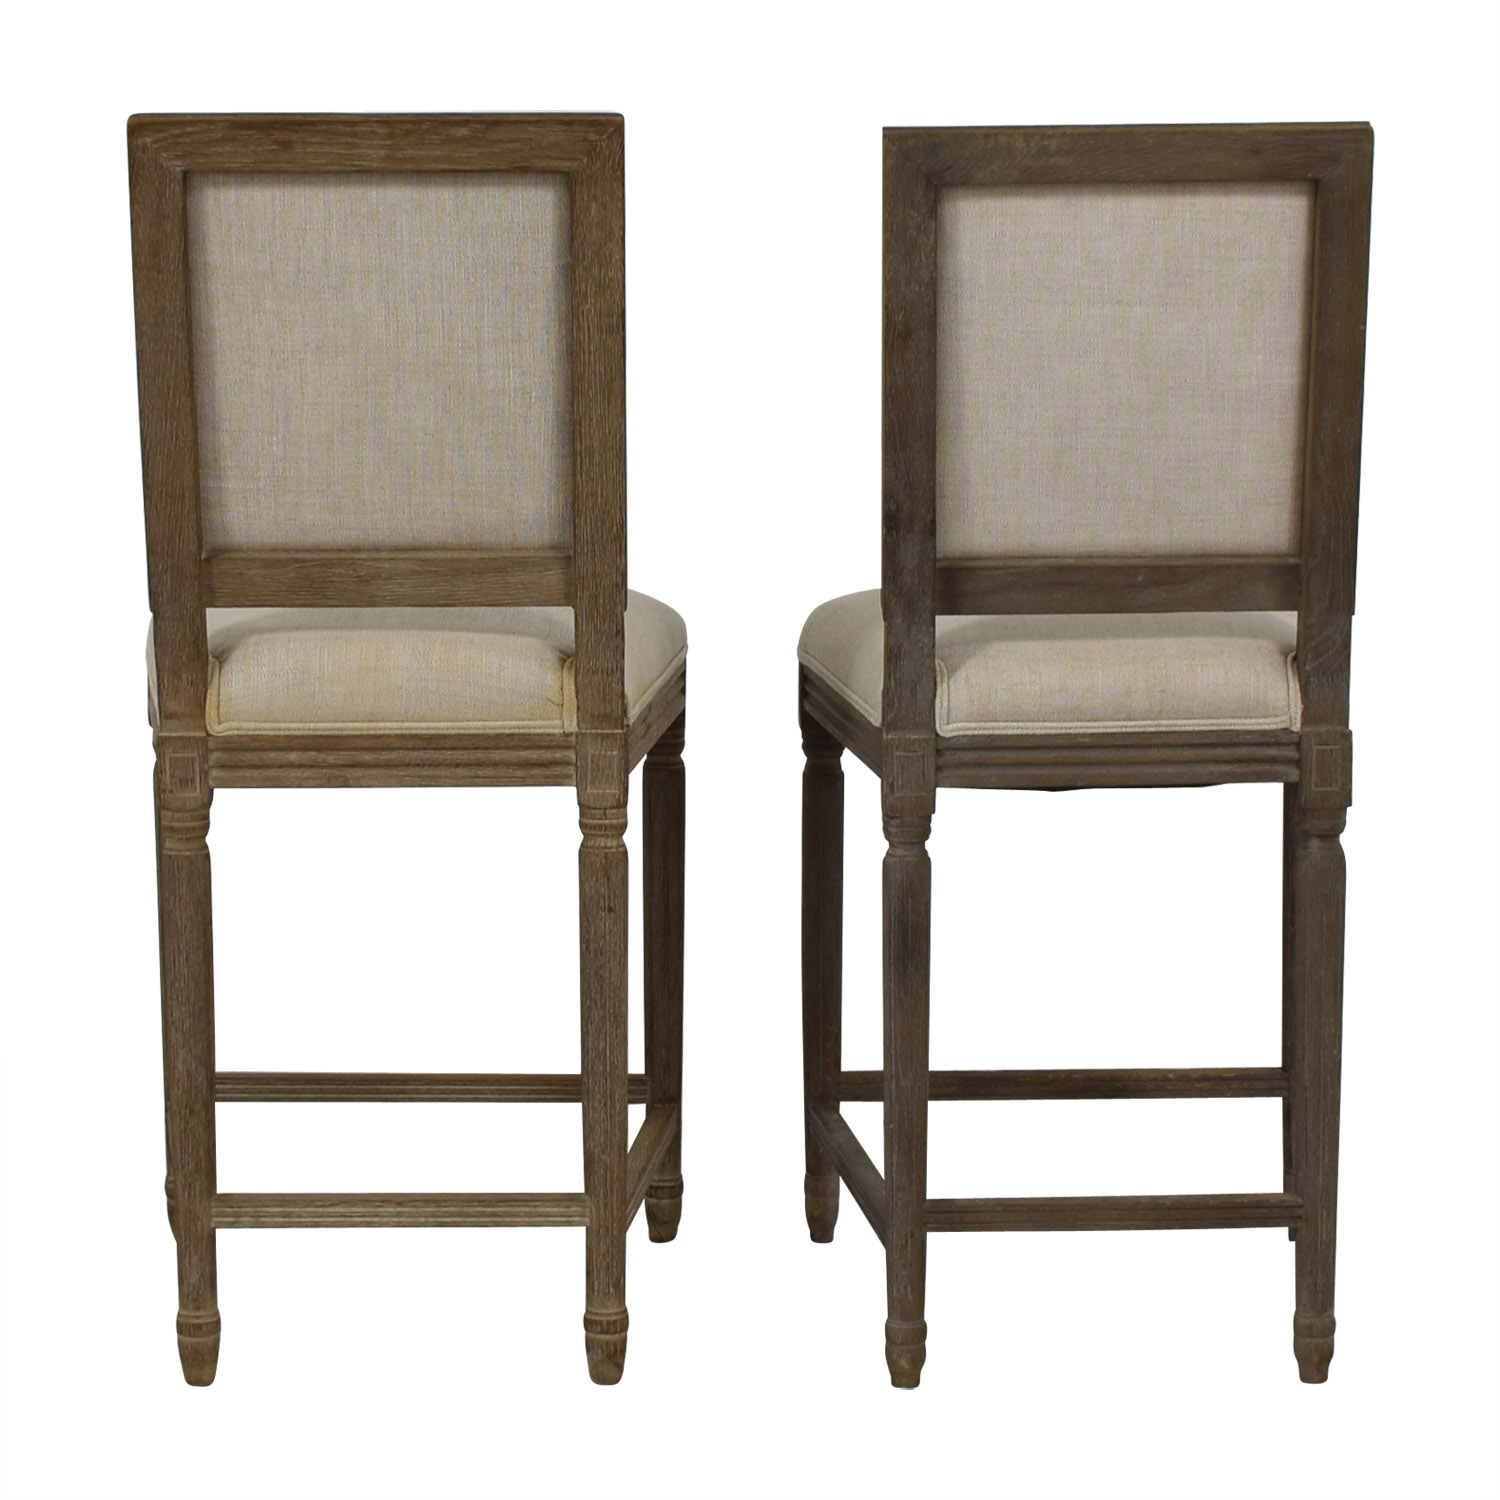 Restoration Hardware Restoration Hardware Vintage French Square Counter Stools second hand